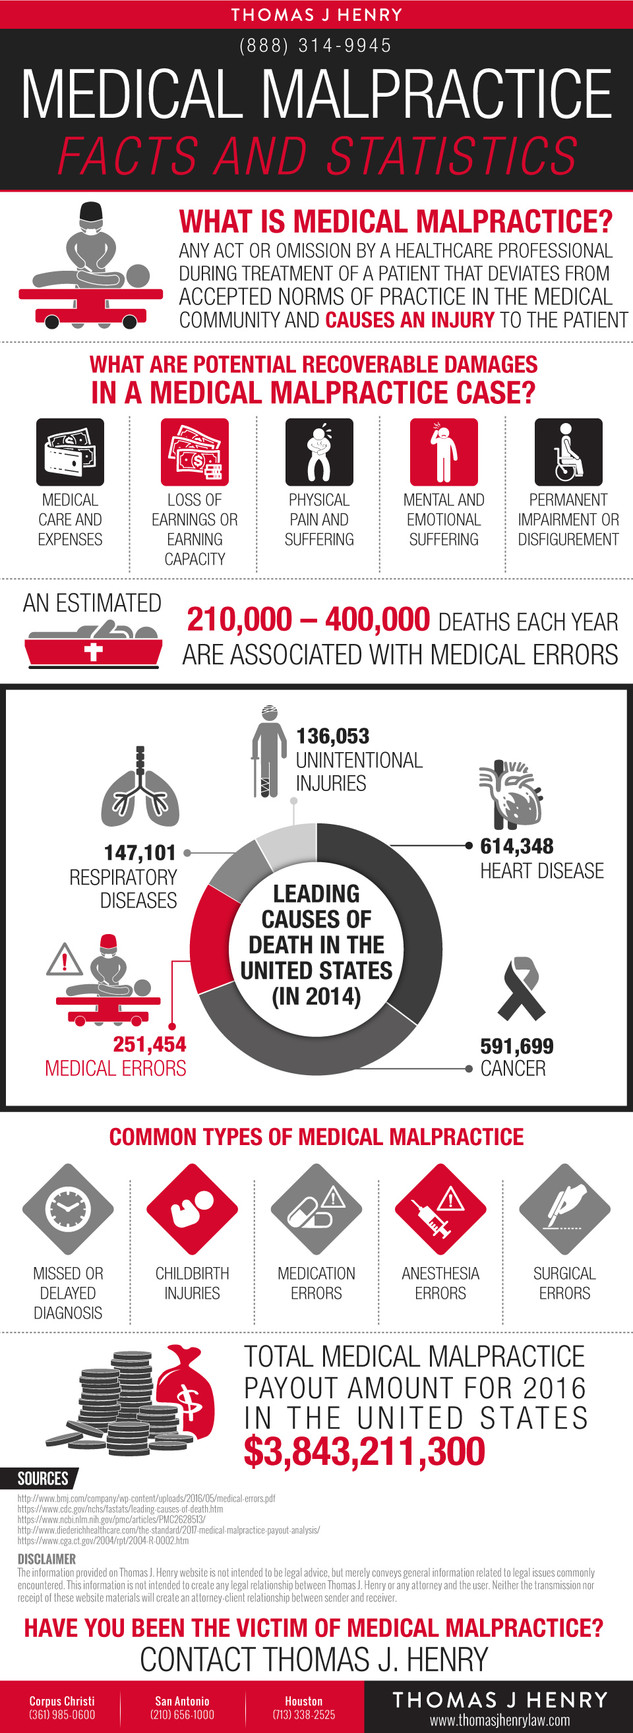 Medical Malpractice Facts and Statistics